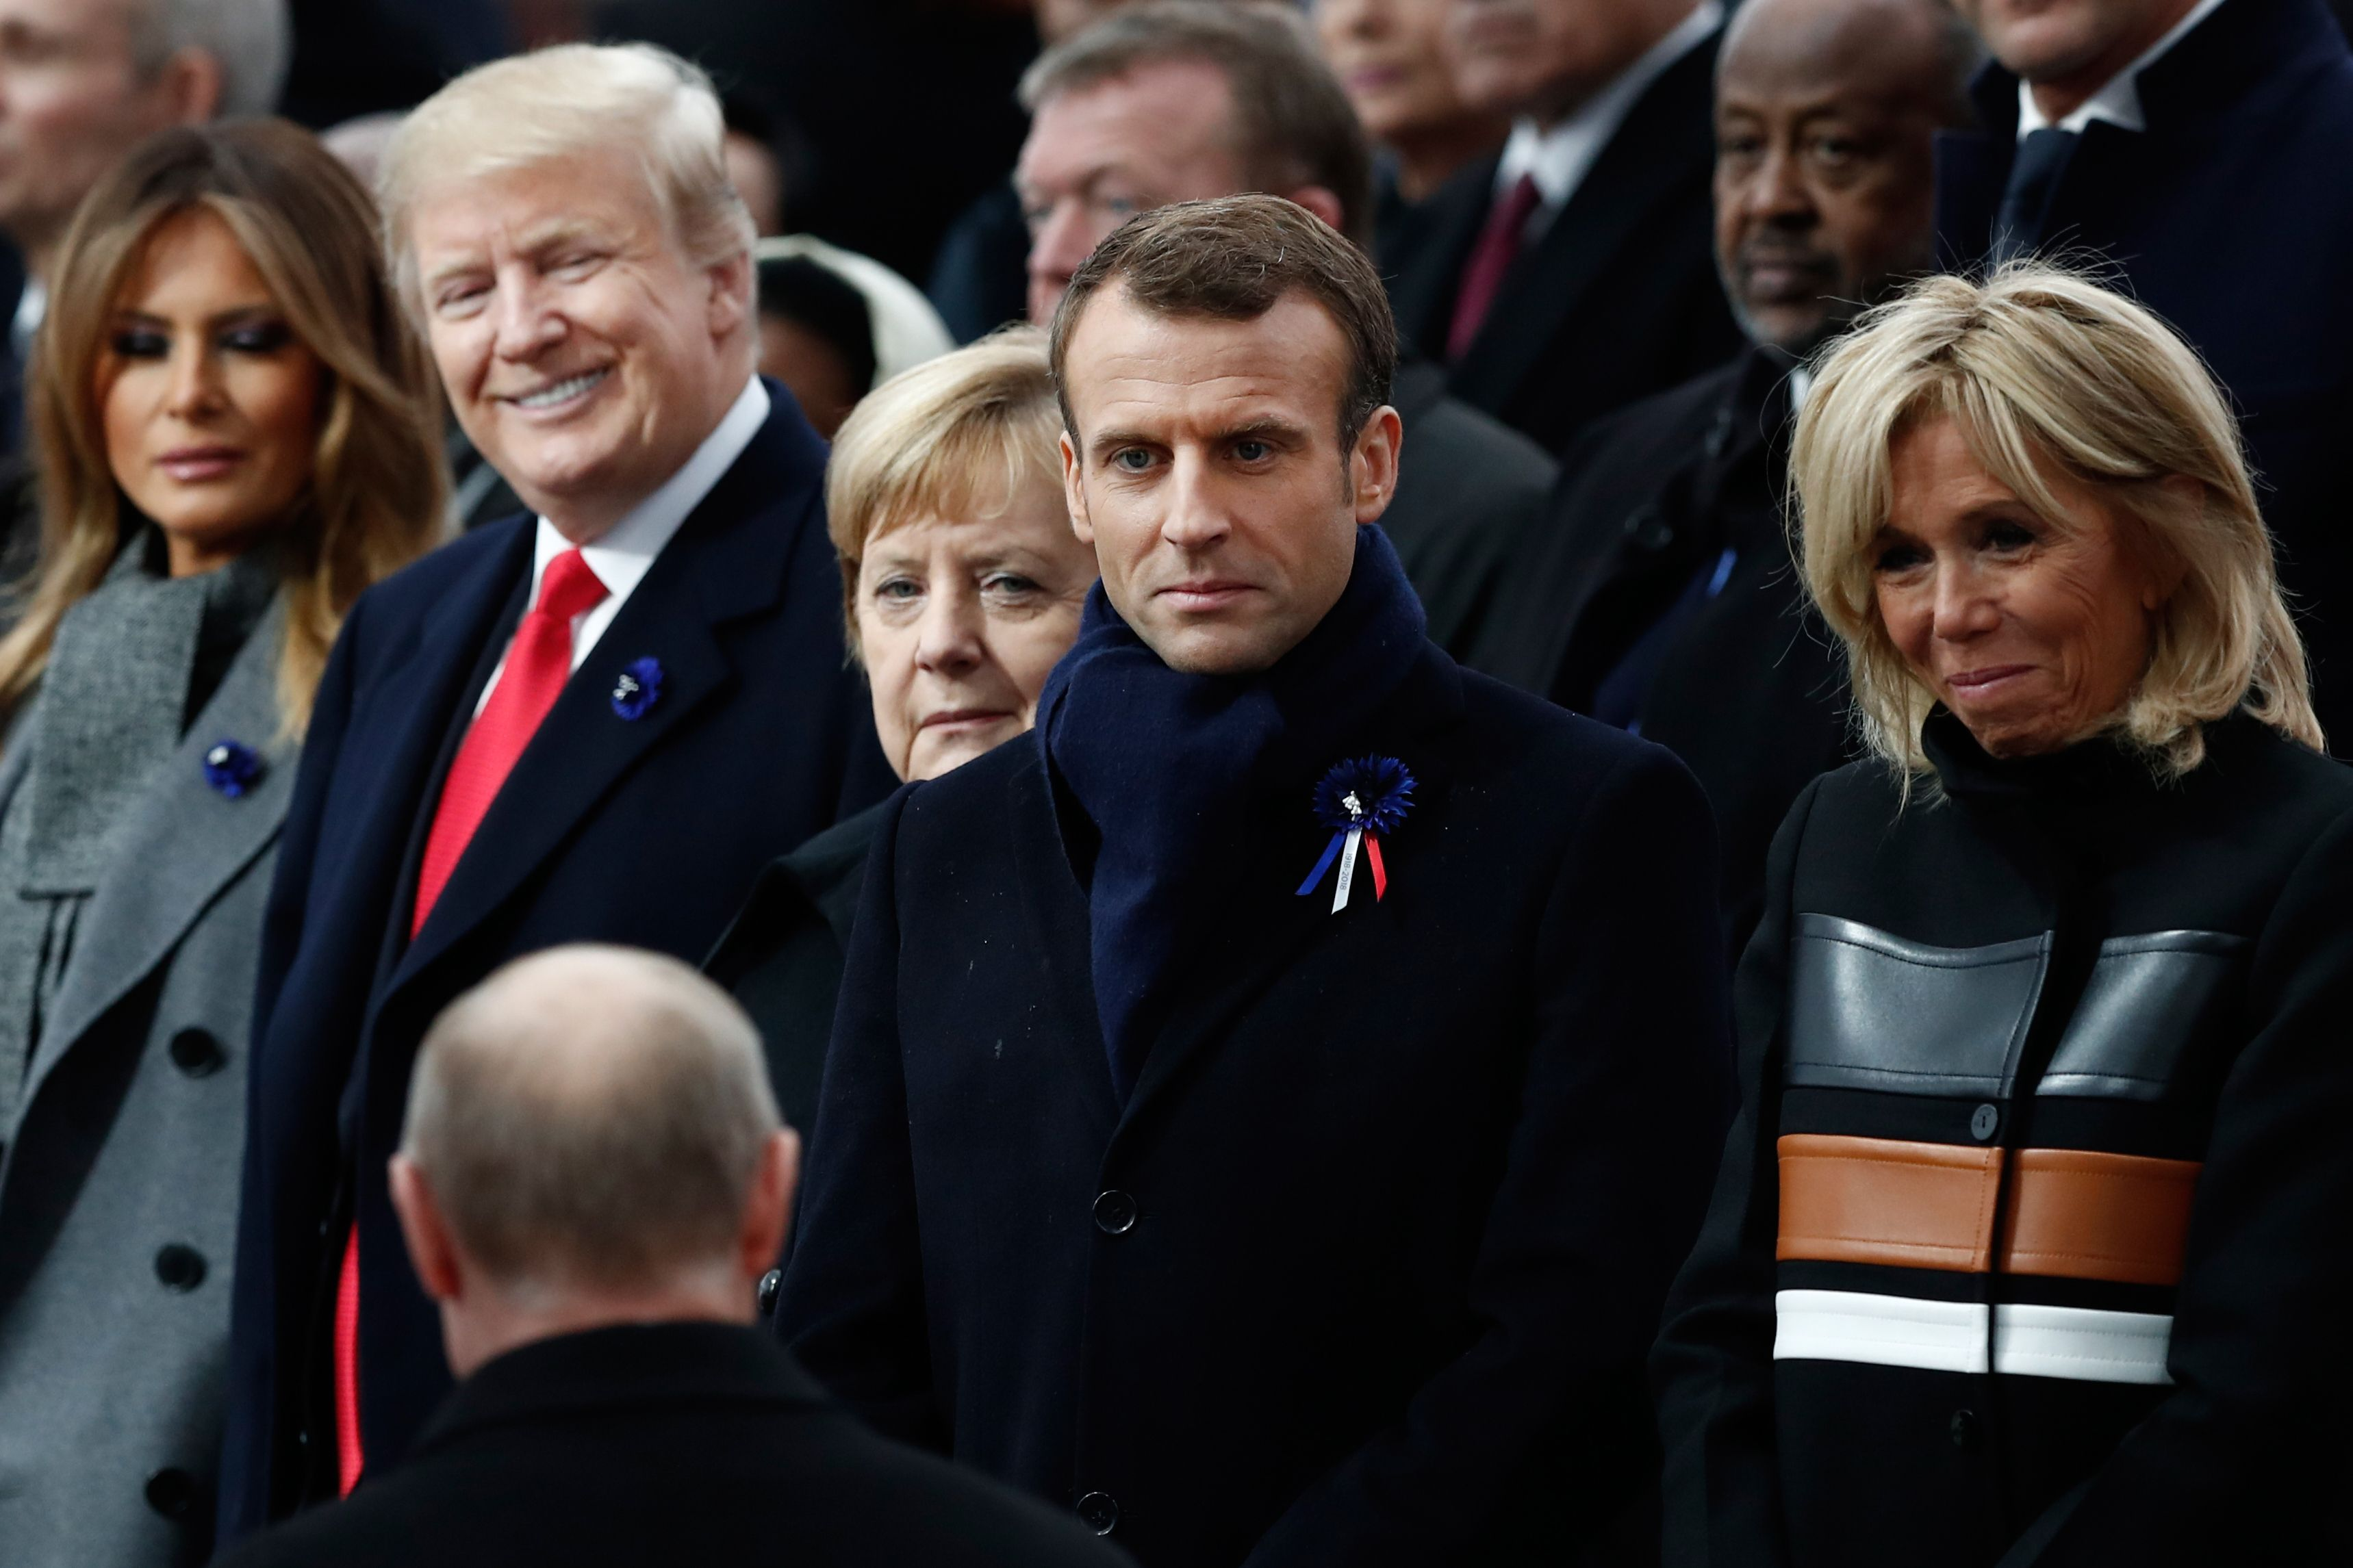 US First Lady Melania Trump, US President Donald Trump, German Chancellor Angela Merkel, French President Emmanuel Macron and French President's wife Brigitte Macron react as Russian President Vladimir Putin (front C) arrives to attend a ceremony at the Arc de Triomphe in Paris on November 11, 2018.